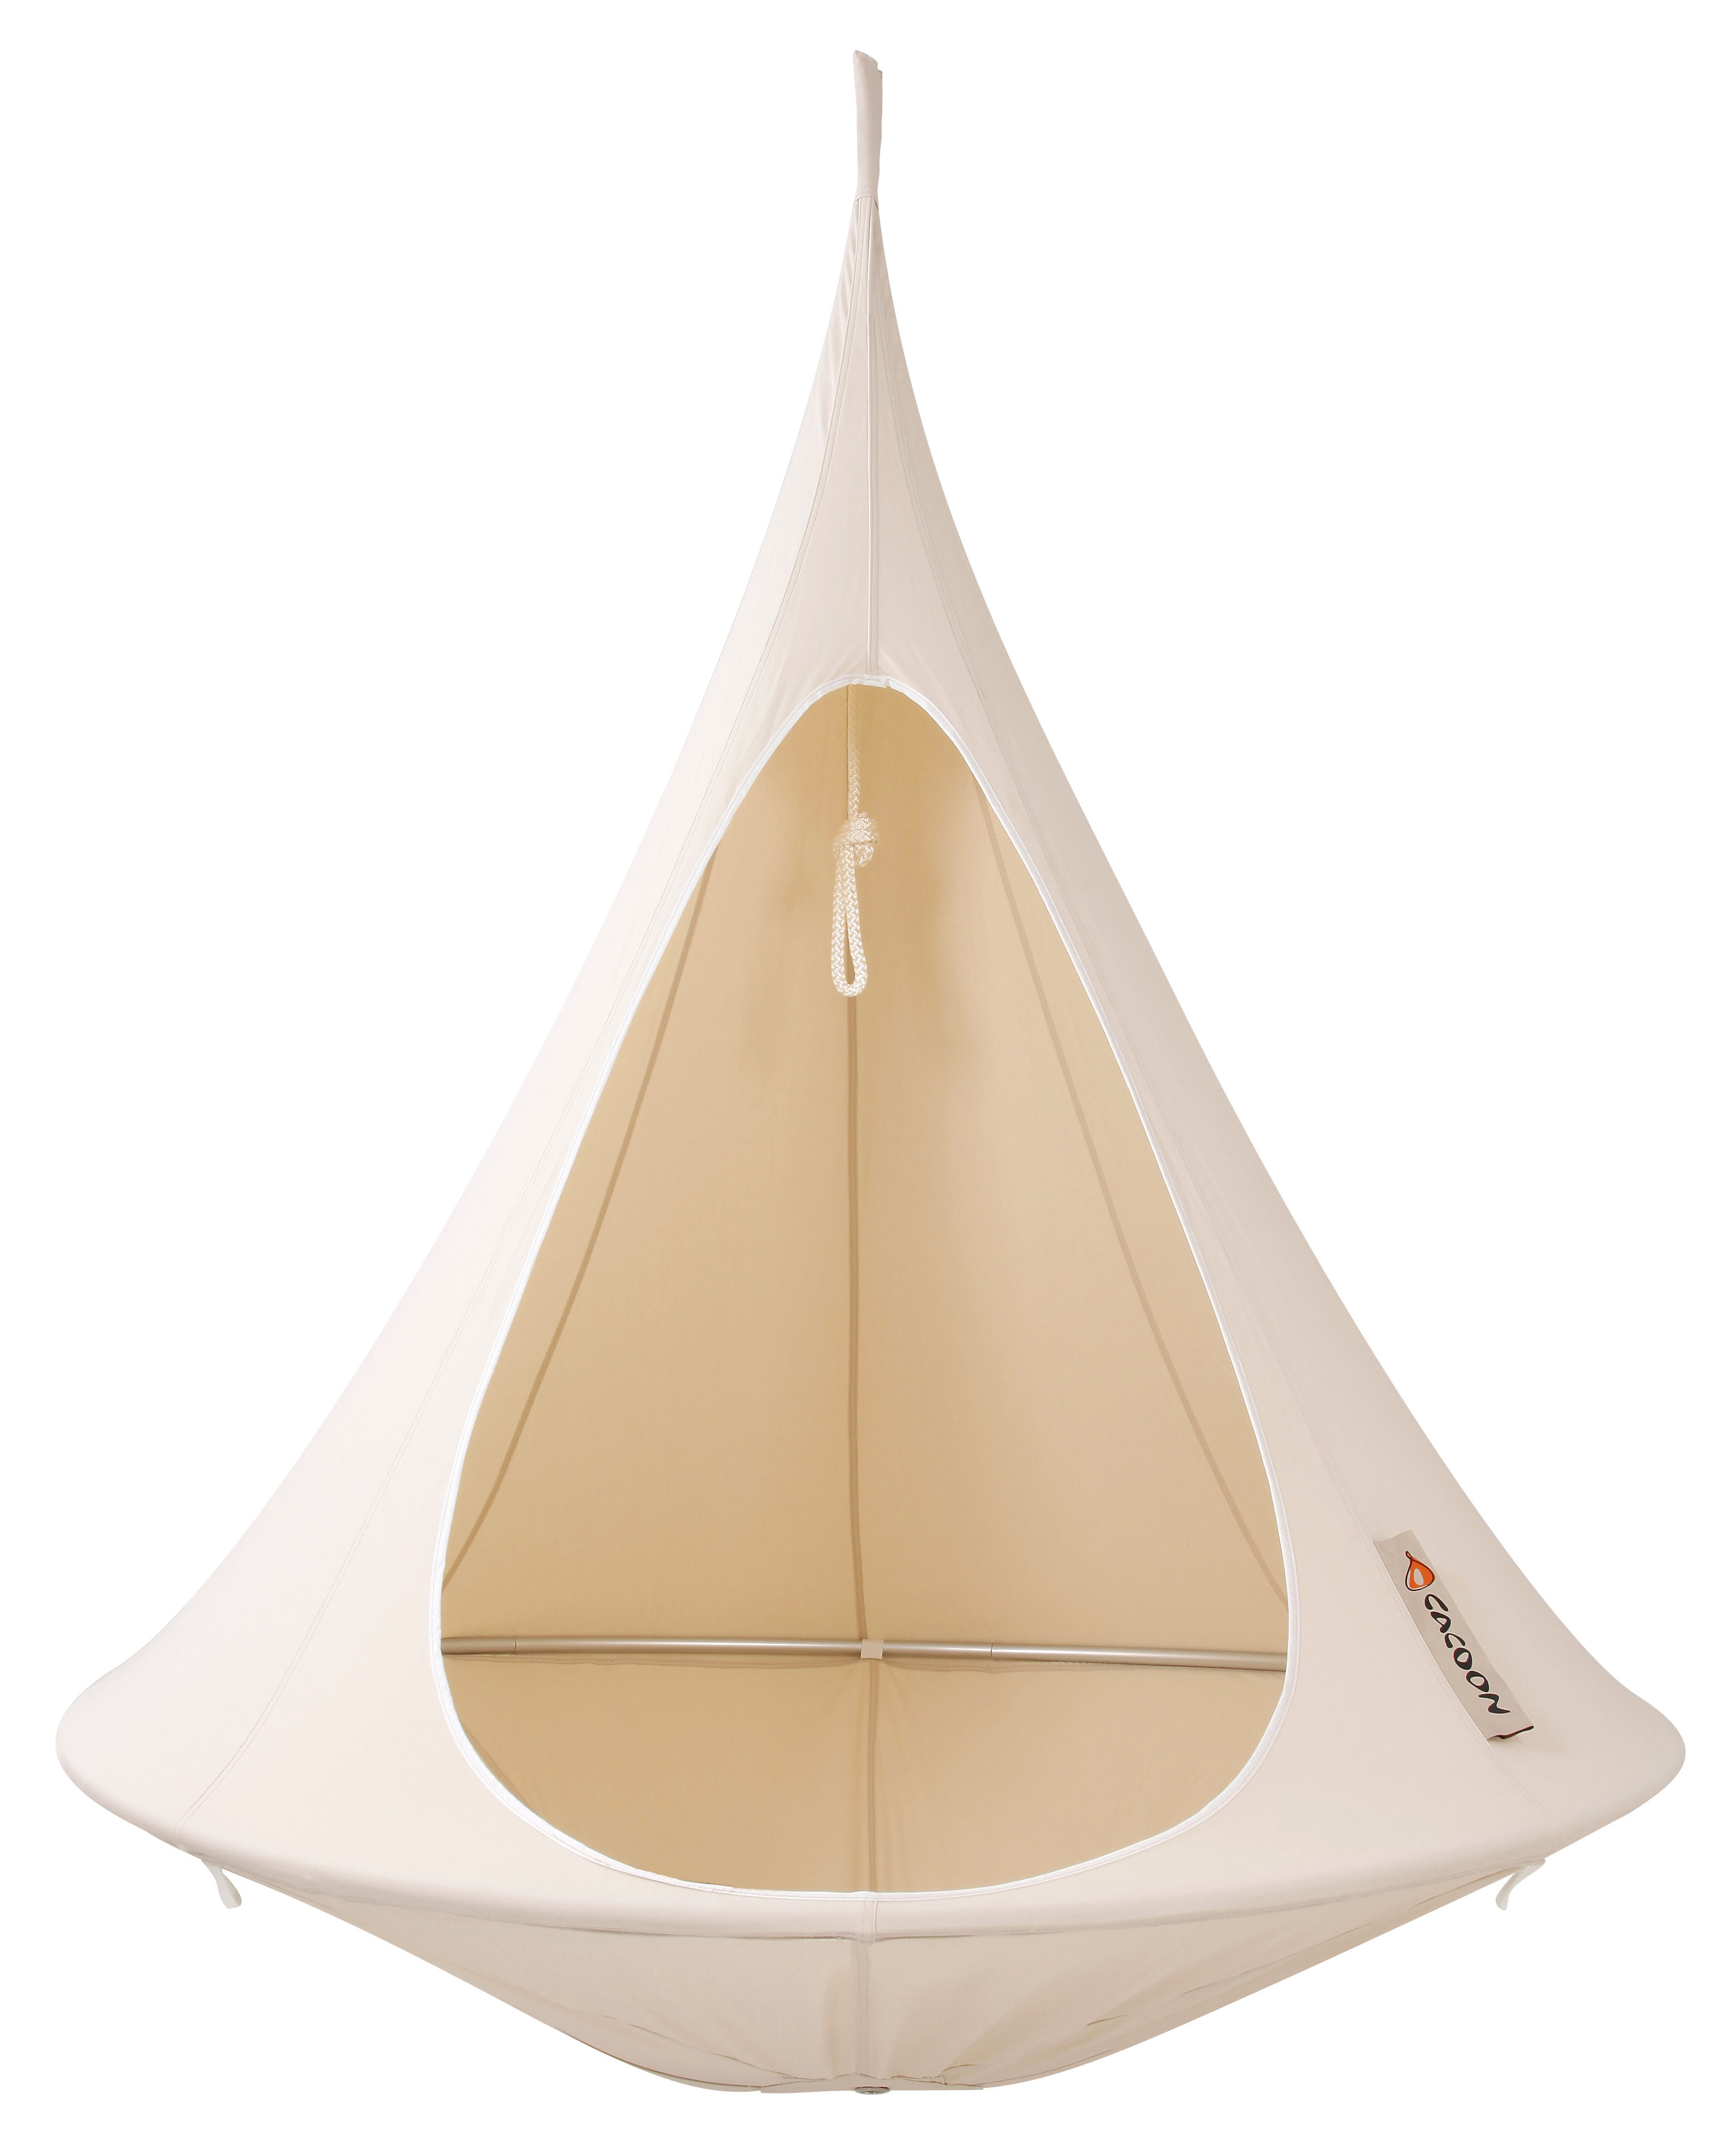 Outdoor - Sun Loungers & Hammocks - Hanging tent - Single Hanging chair by Cacoon - Natural white - Anodized aluminium, Cloth